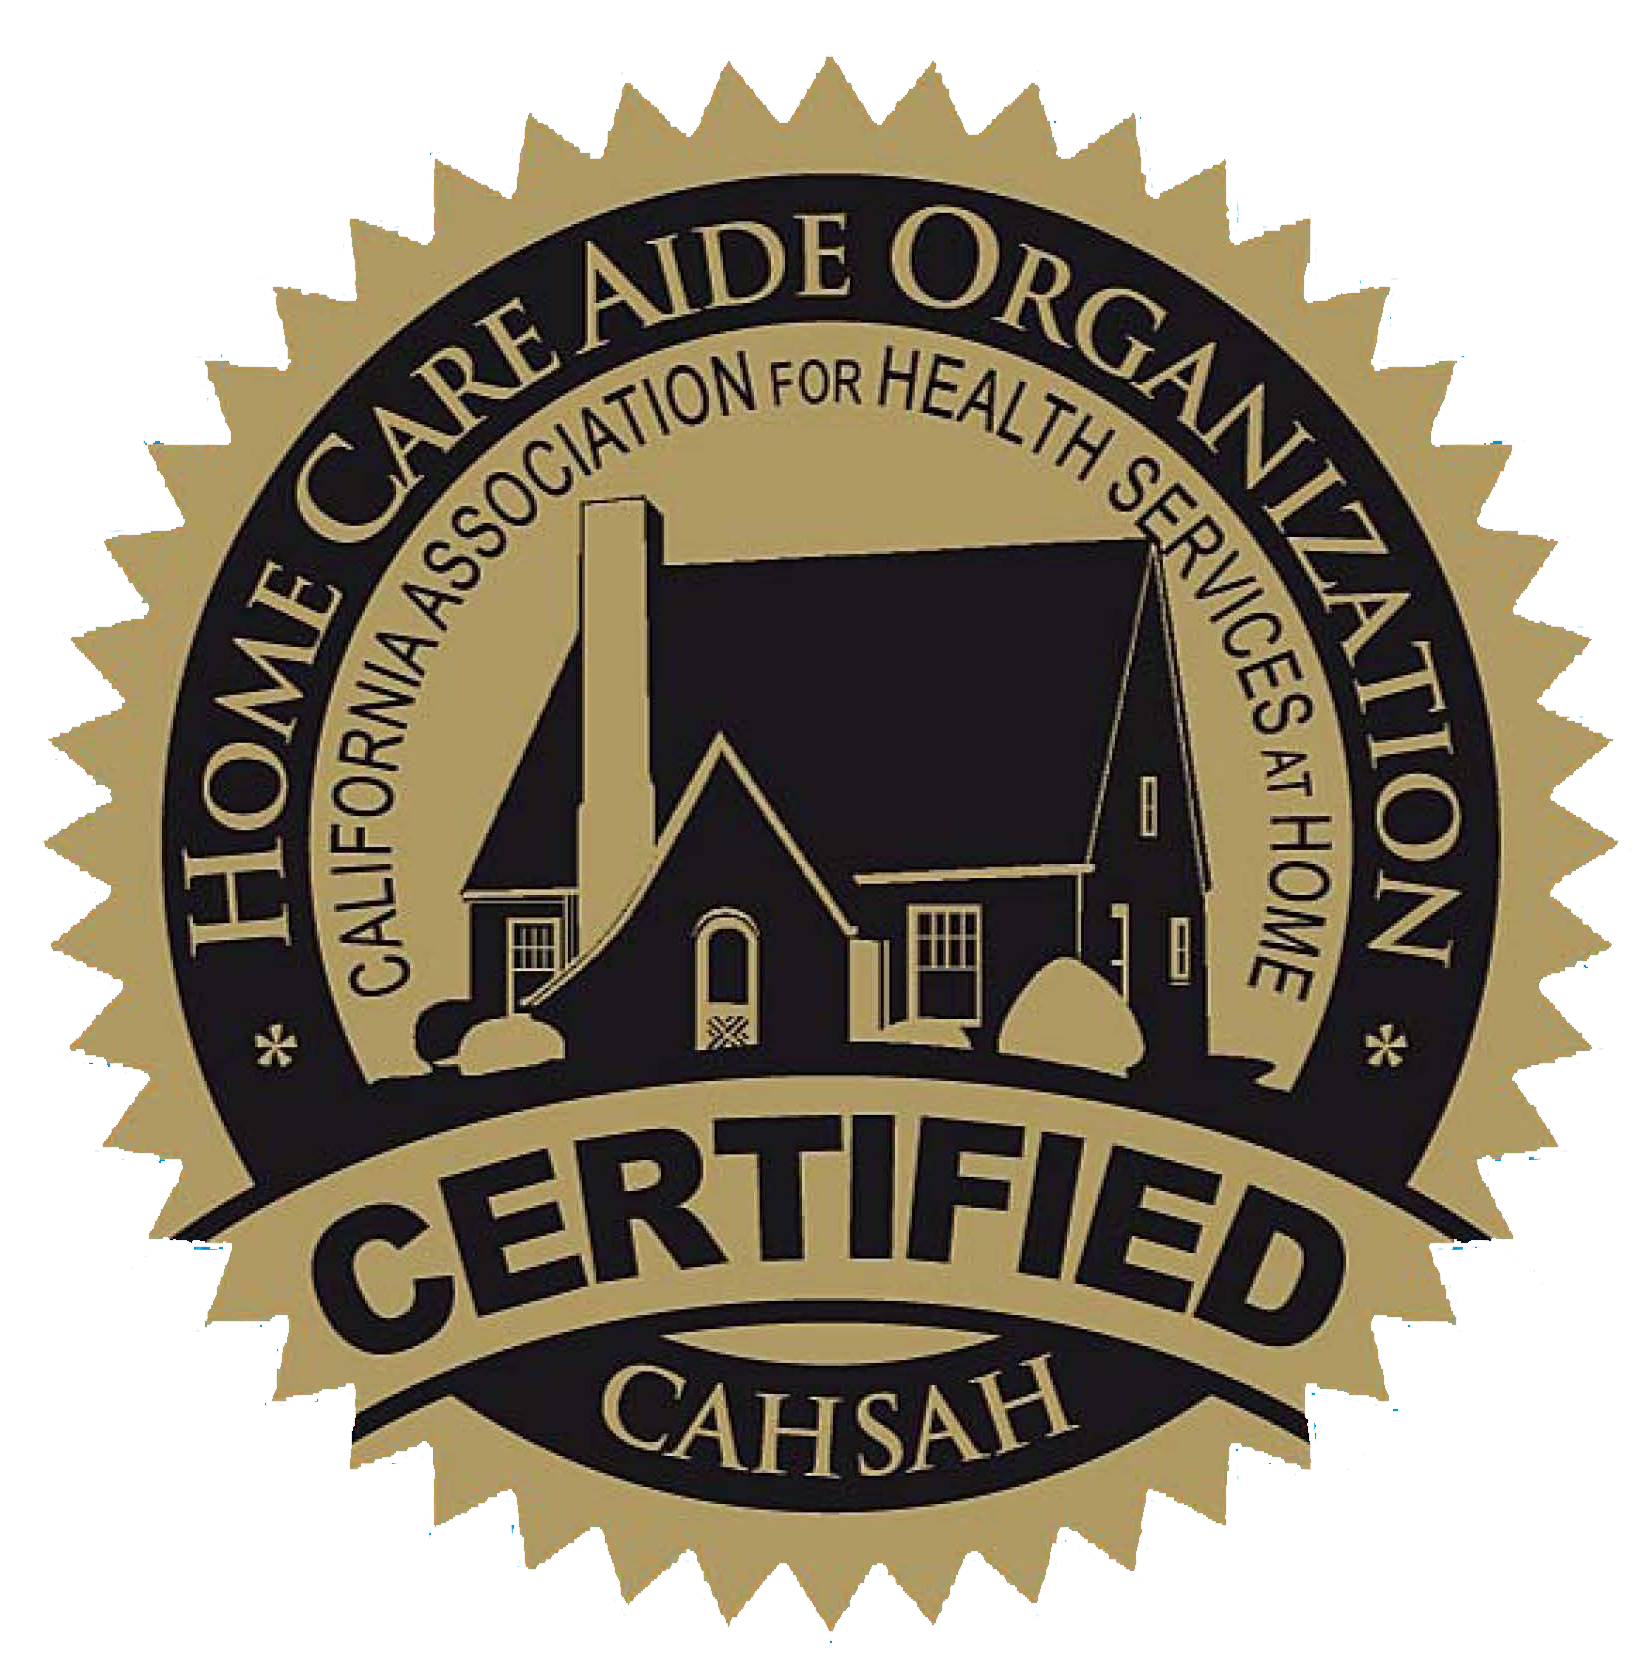 Homecareaidegoldsealg cahsah home care aide organization certification program xflitez Images